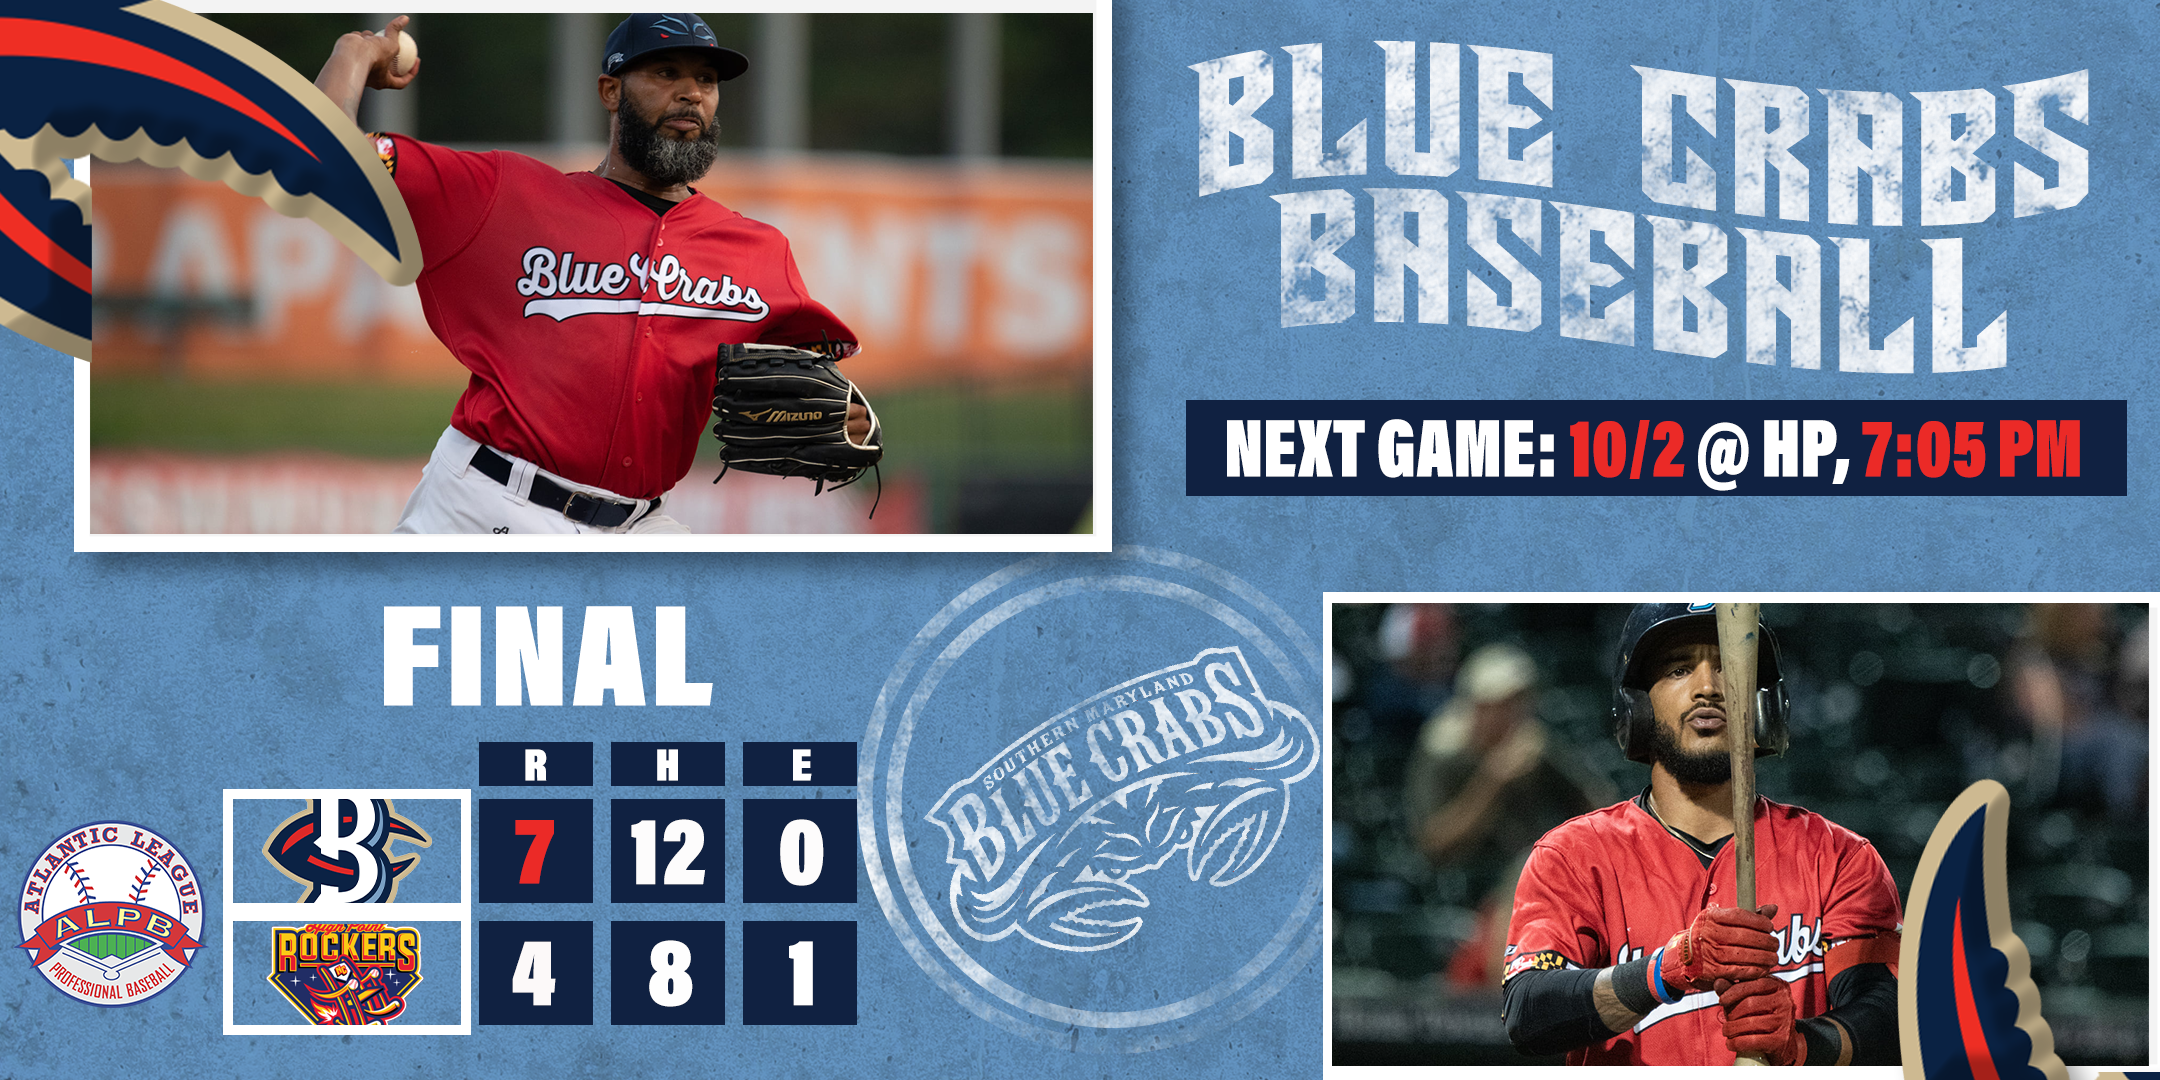 Thompson Ties Atlantic League Record for All-Time Wins at 74 Against Rockers